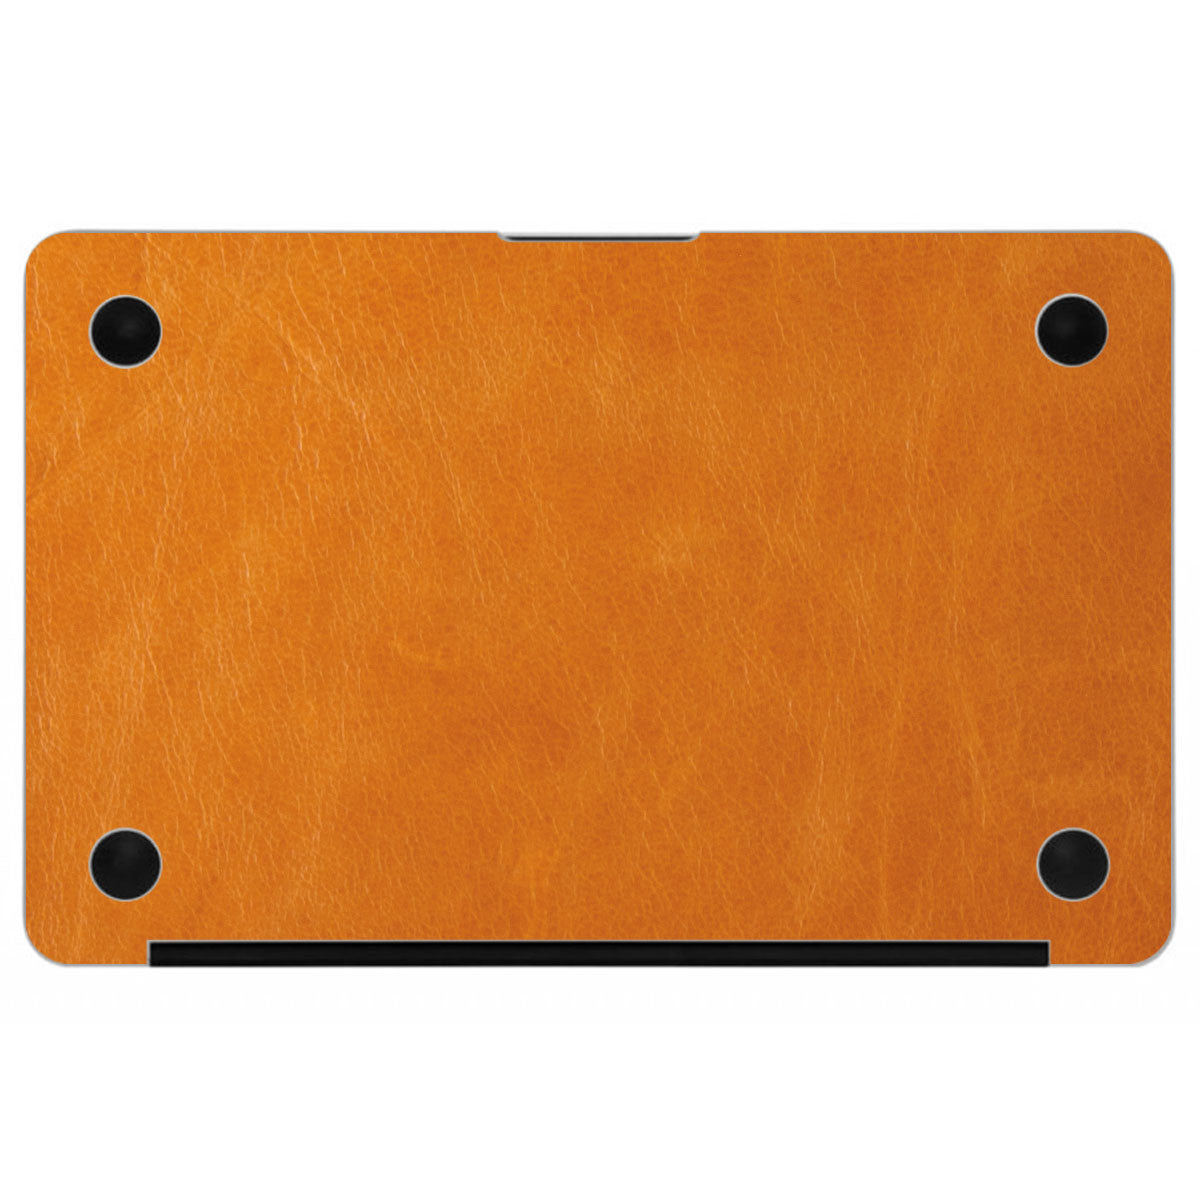 Tan MacBook Leather Bottom Cover